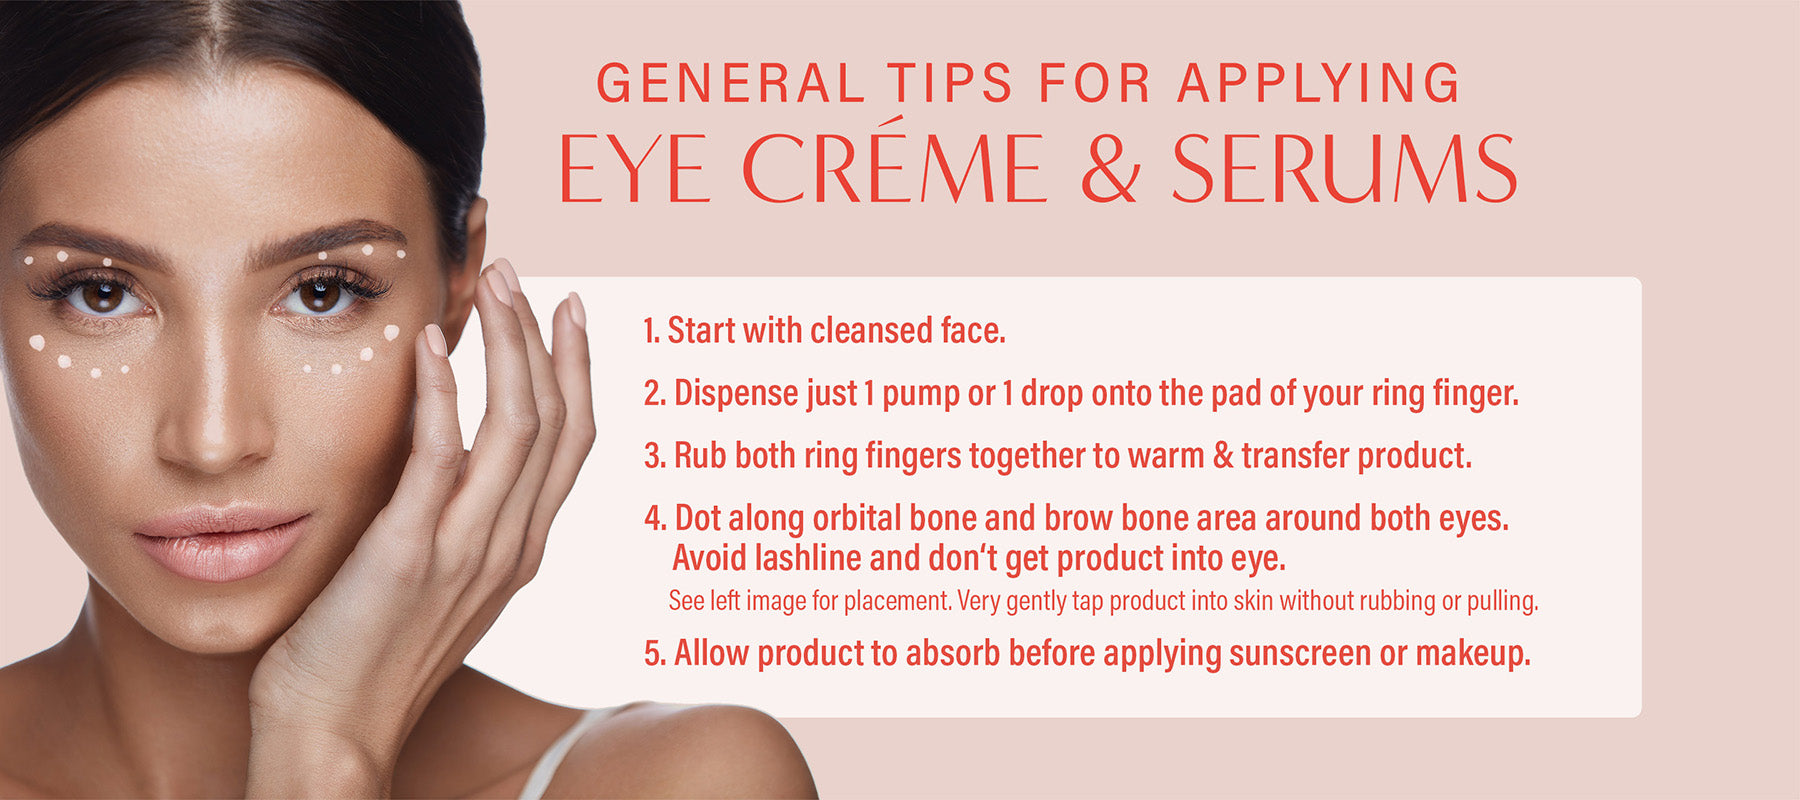 tips for applying eye creme